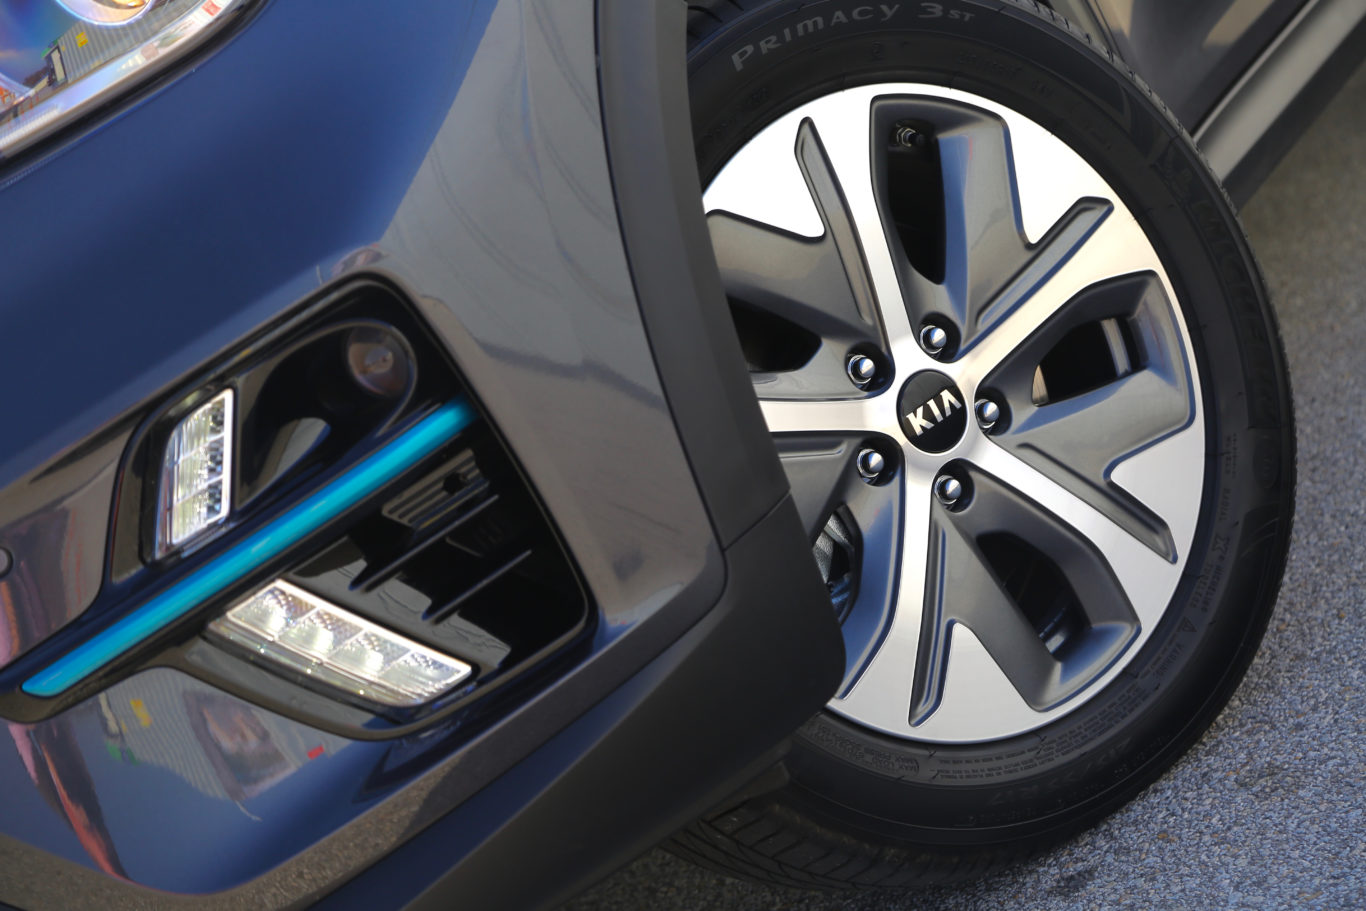 Stylish alloy wheels give the e-Niro a premium look